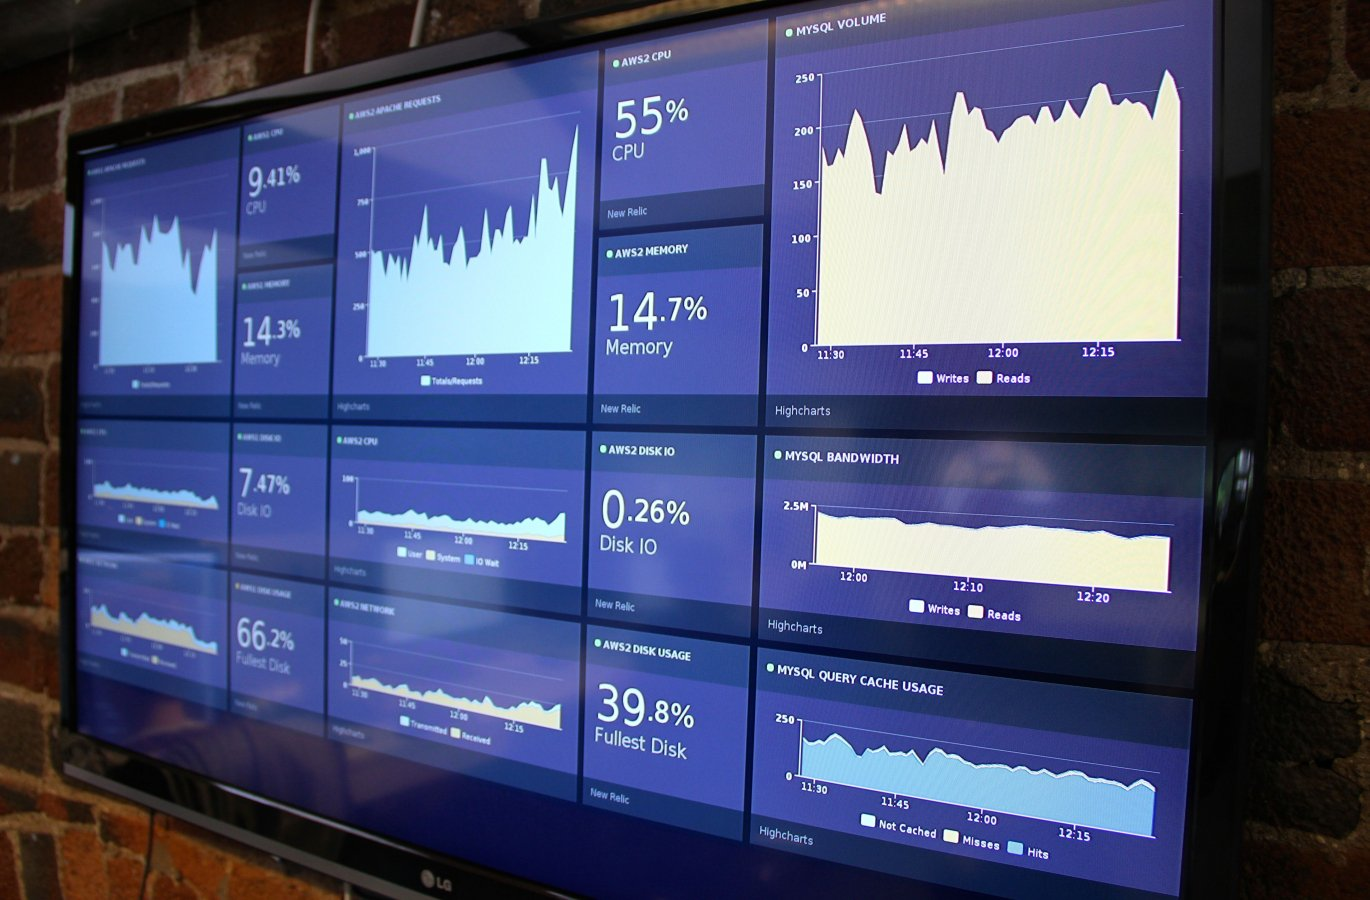 Tutorial: Realtime TV Monitoring with Raspberry Pi - Blog